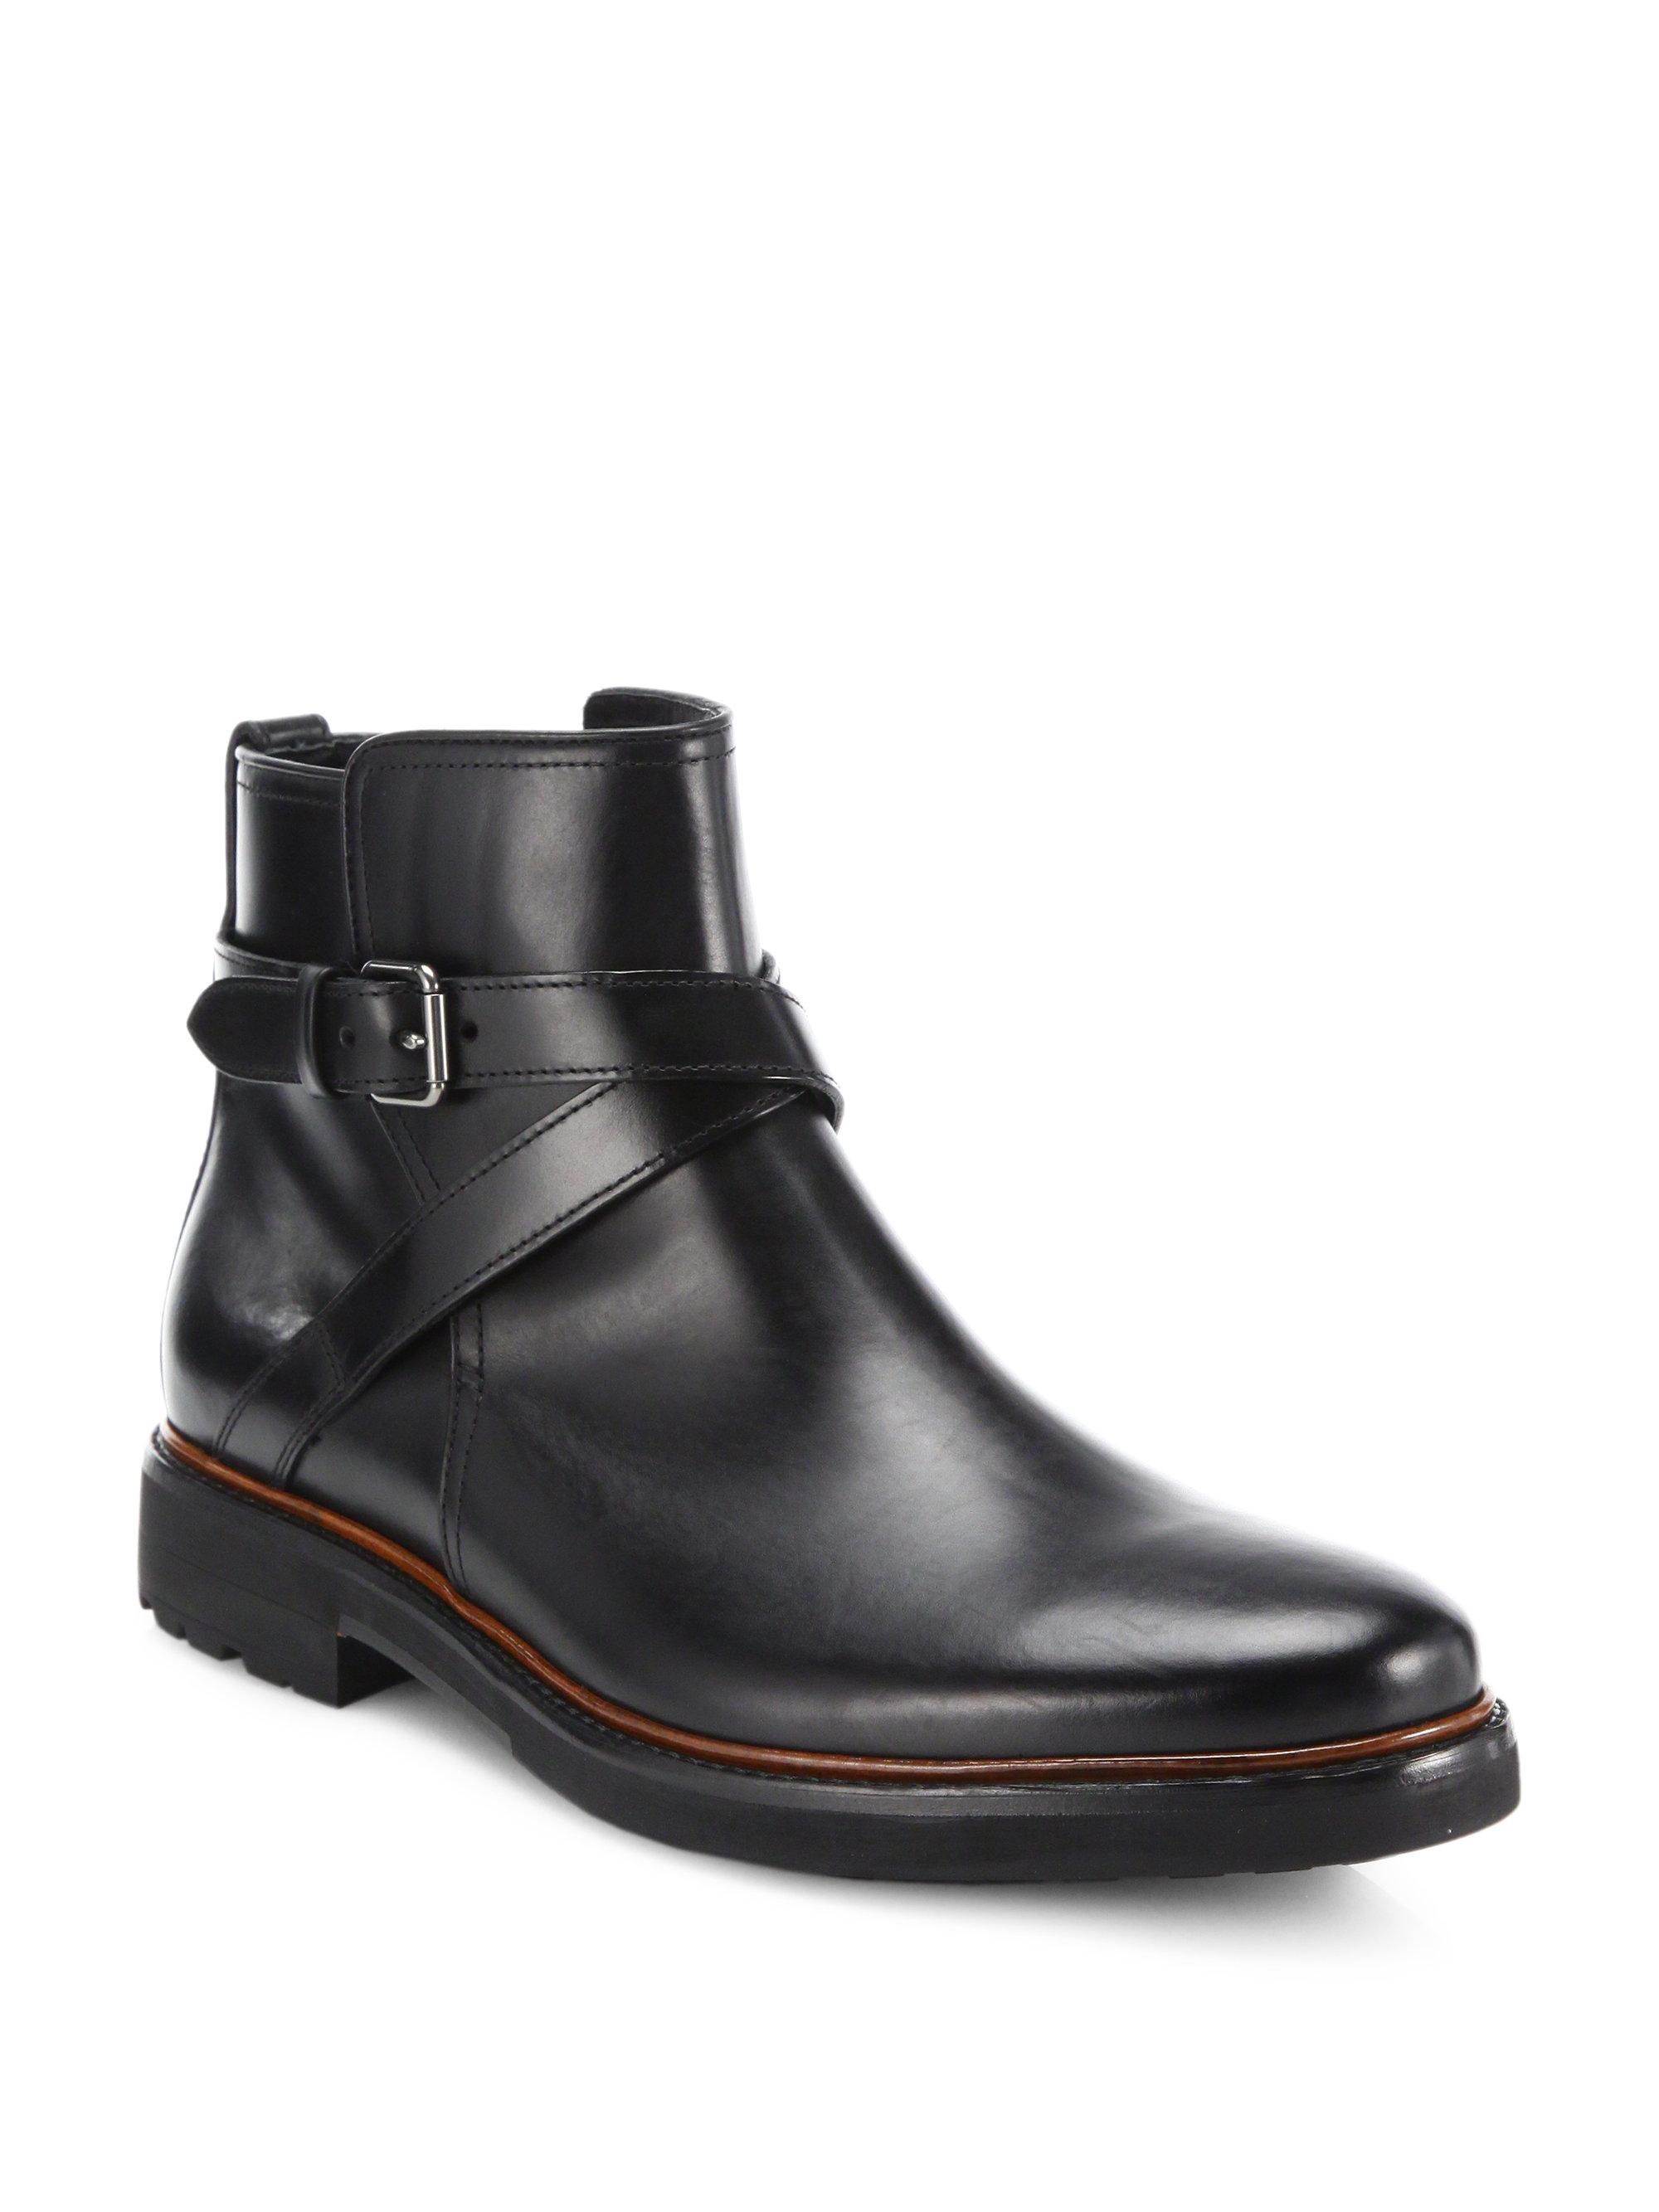 coach bryant buckled leather ankle boots in black for